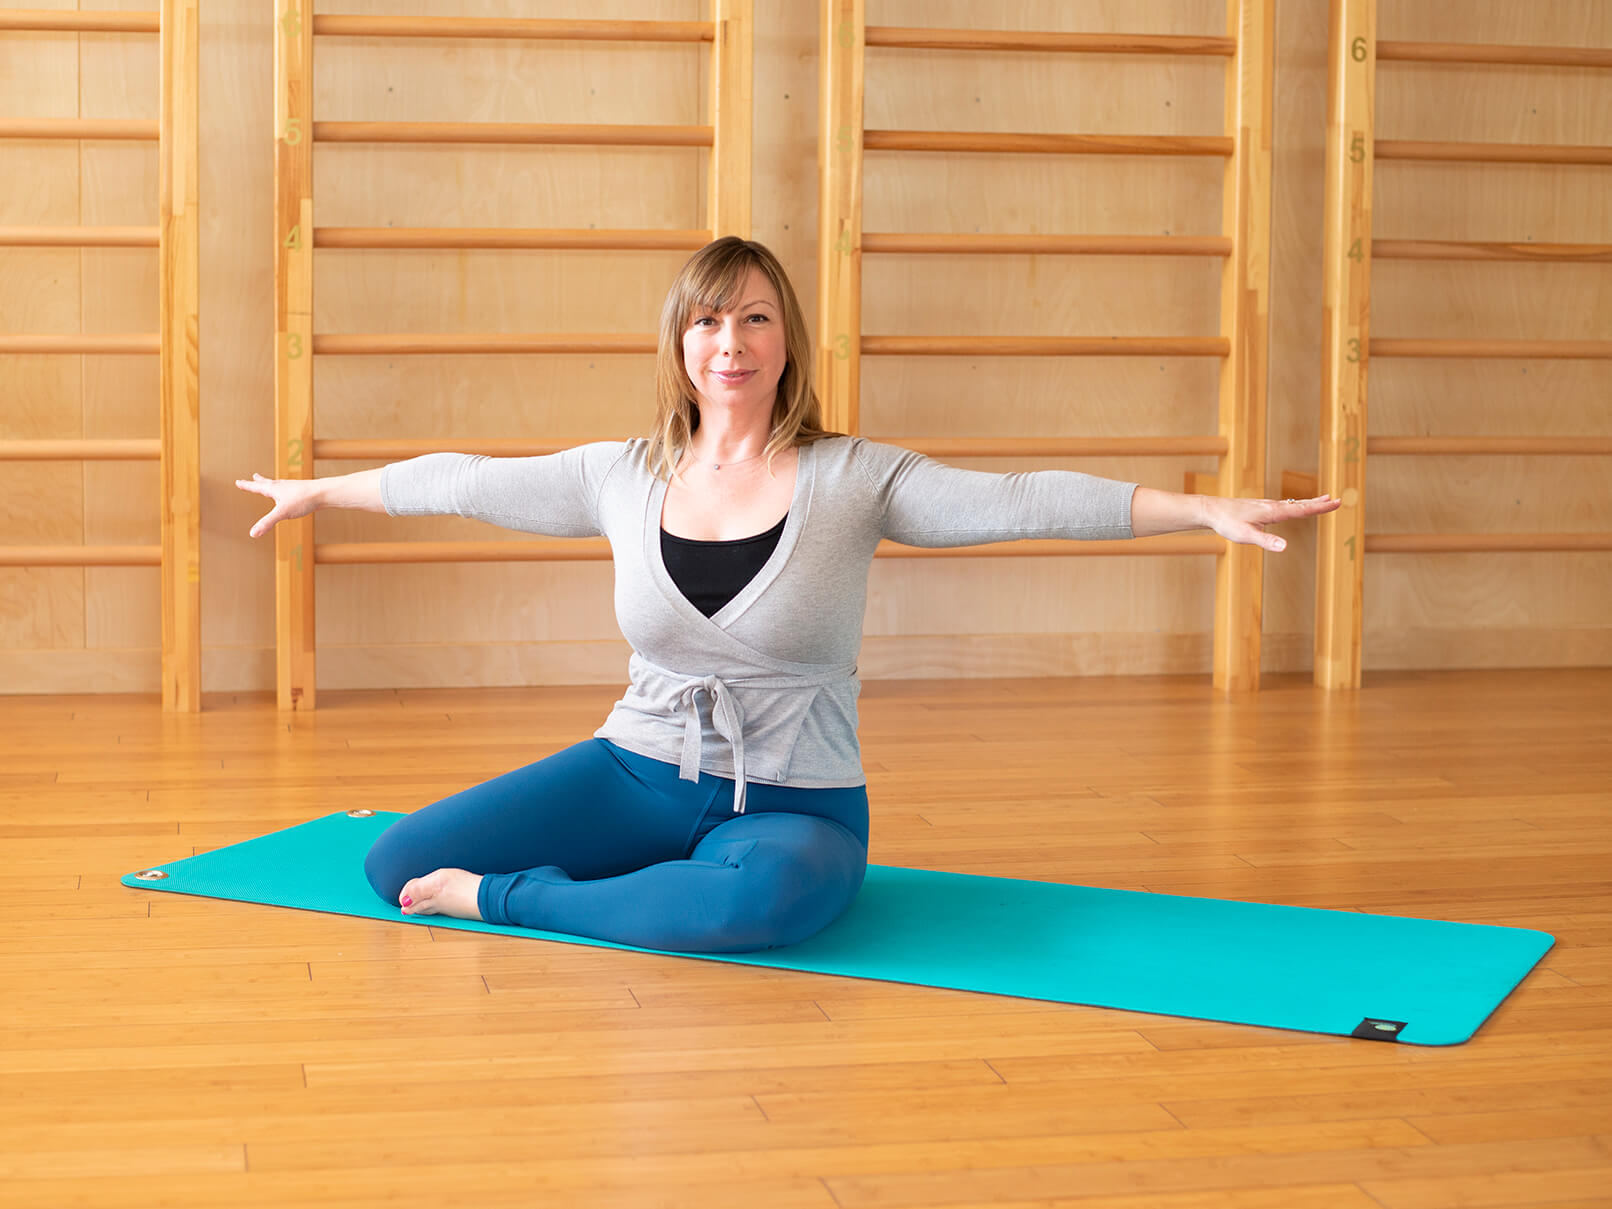 Home Pilates Mat Routine with Celeste